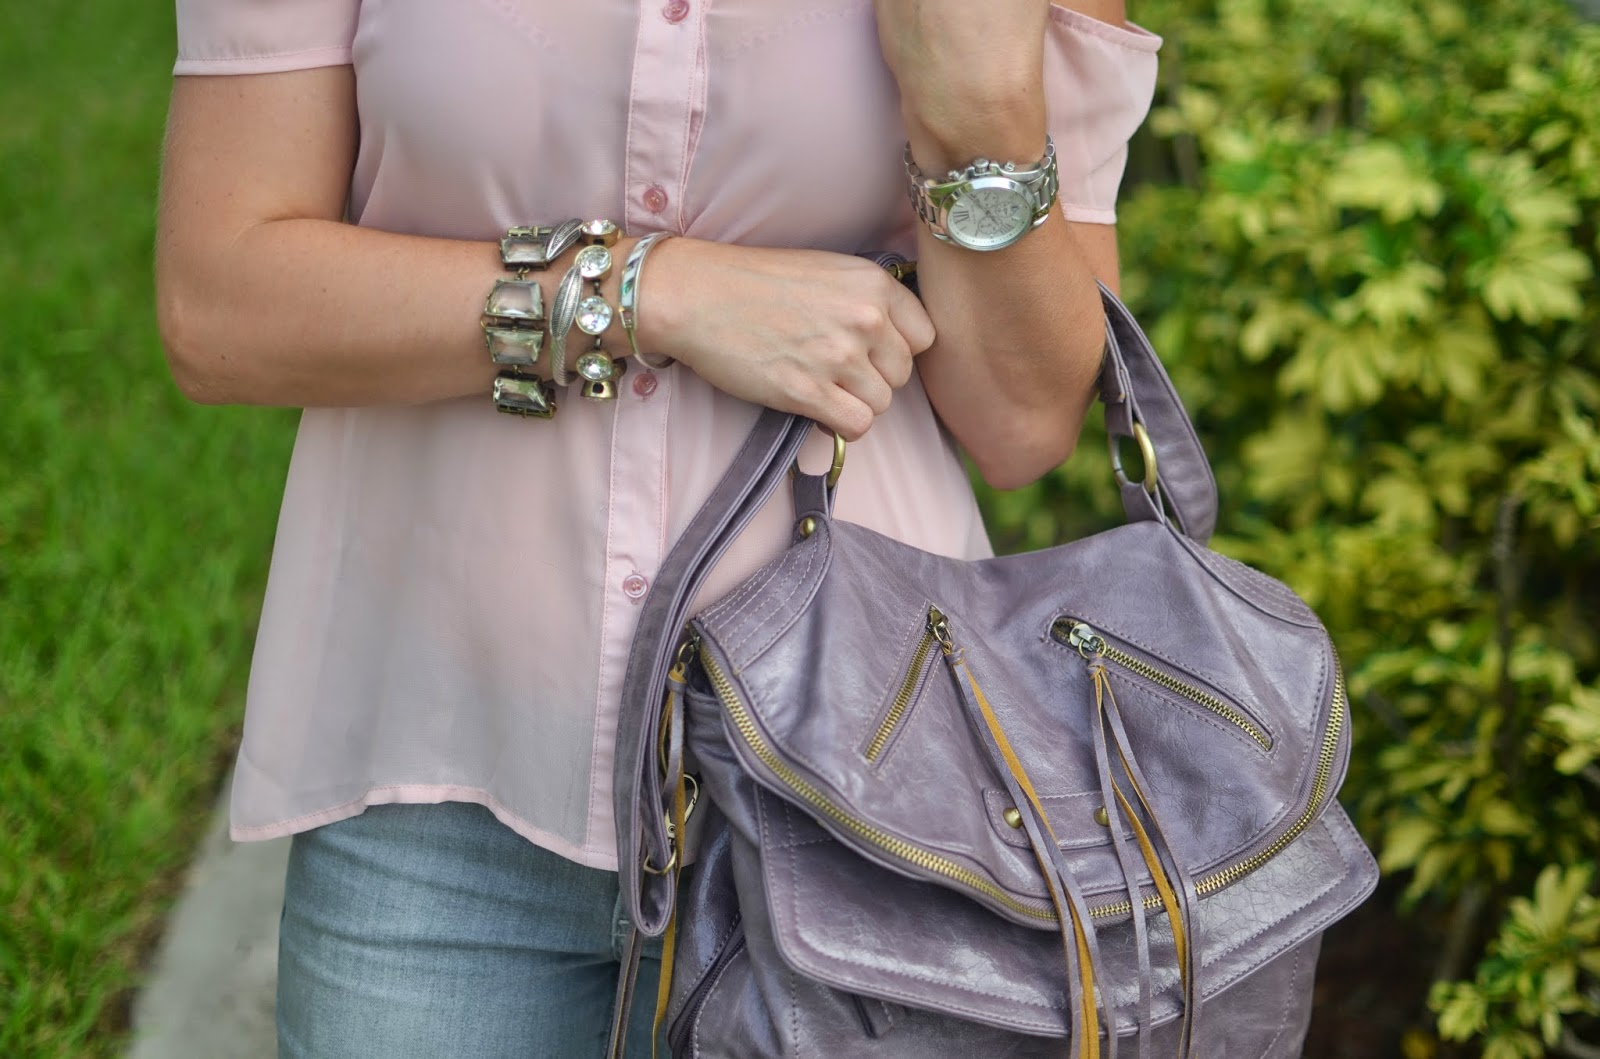 blush top - gray jeans - pink sandals - lavender bag - Emma & Sophia - arm party